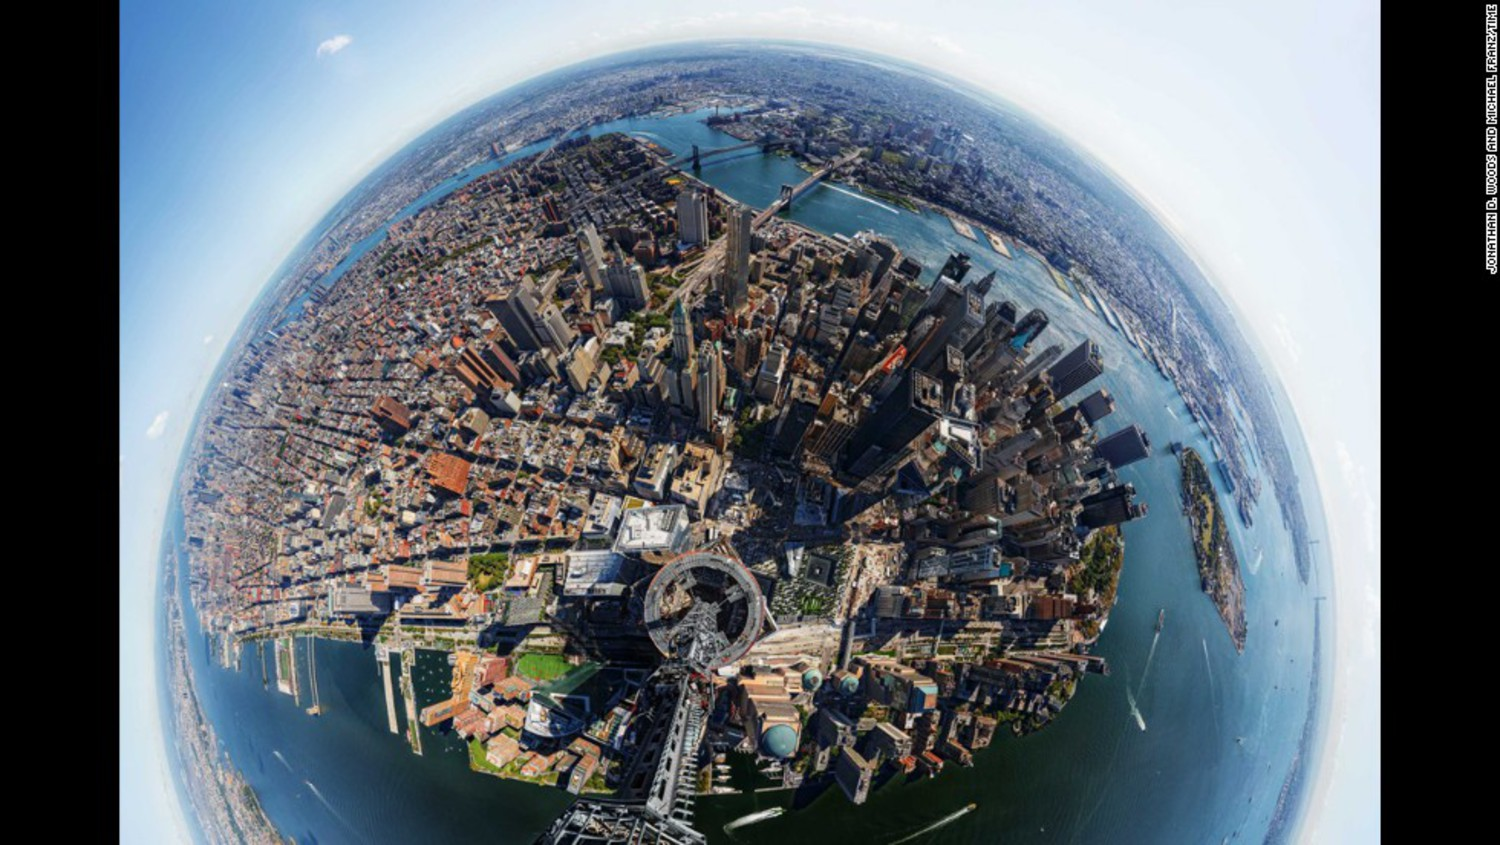 In 2013, Time magazine created this 360-degree panoramic  view from the top of One World Trade Center, the tallest building in the Western hemisphere.